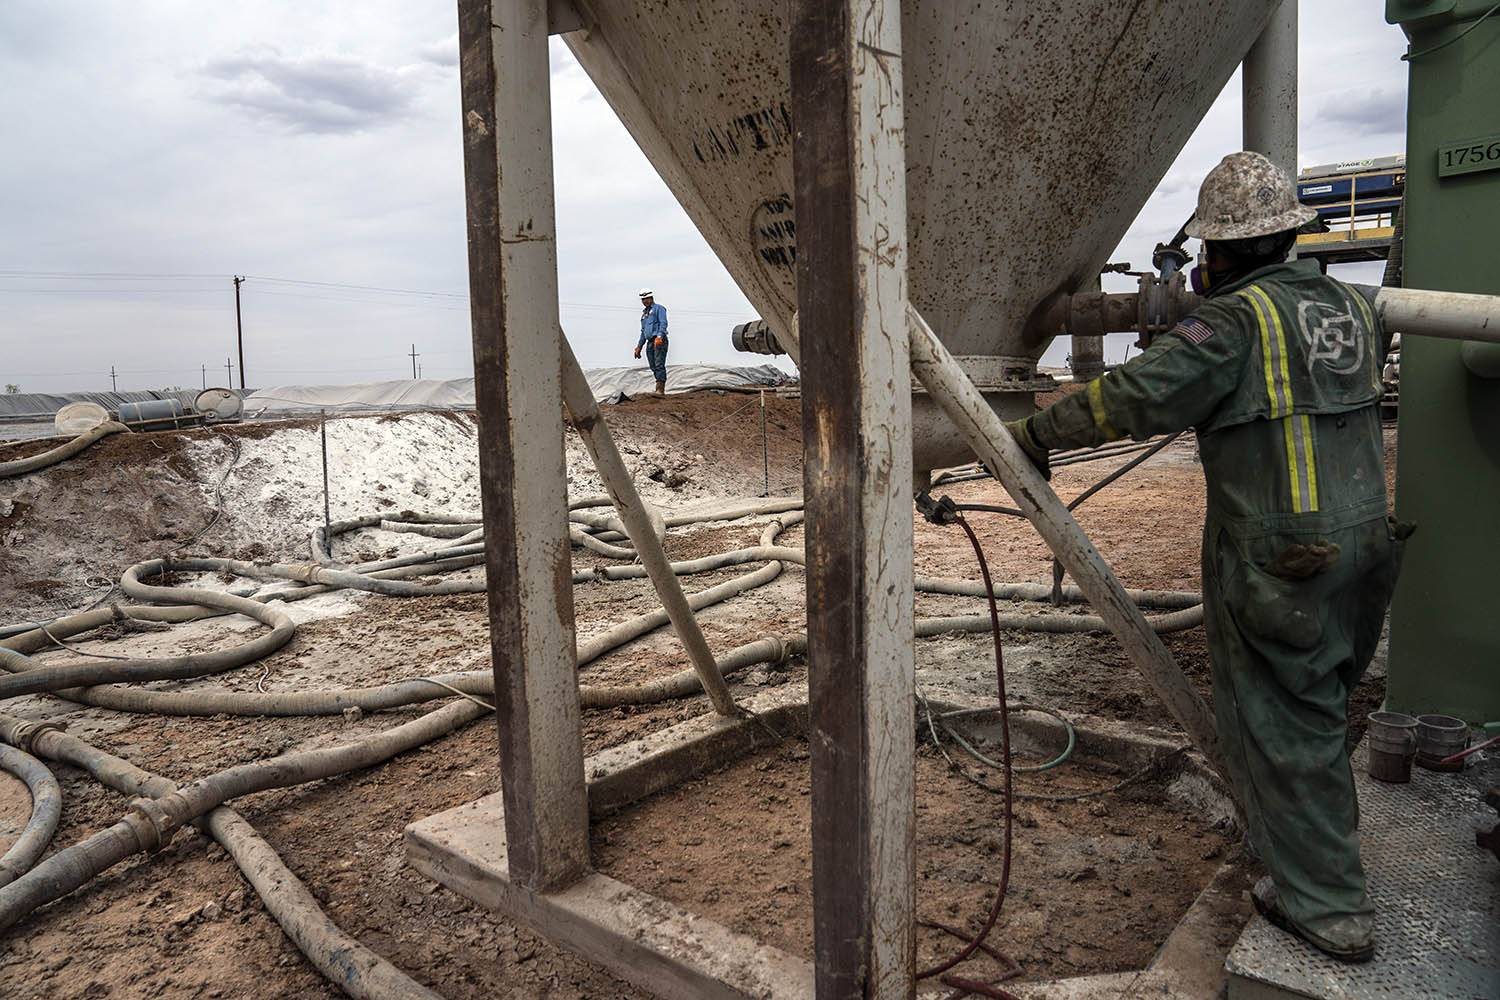 Workers extract oil from oil wells in the Permian Basin in Midland, Texas on May 1, 2018.